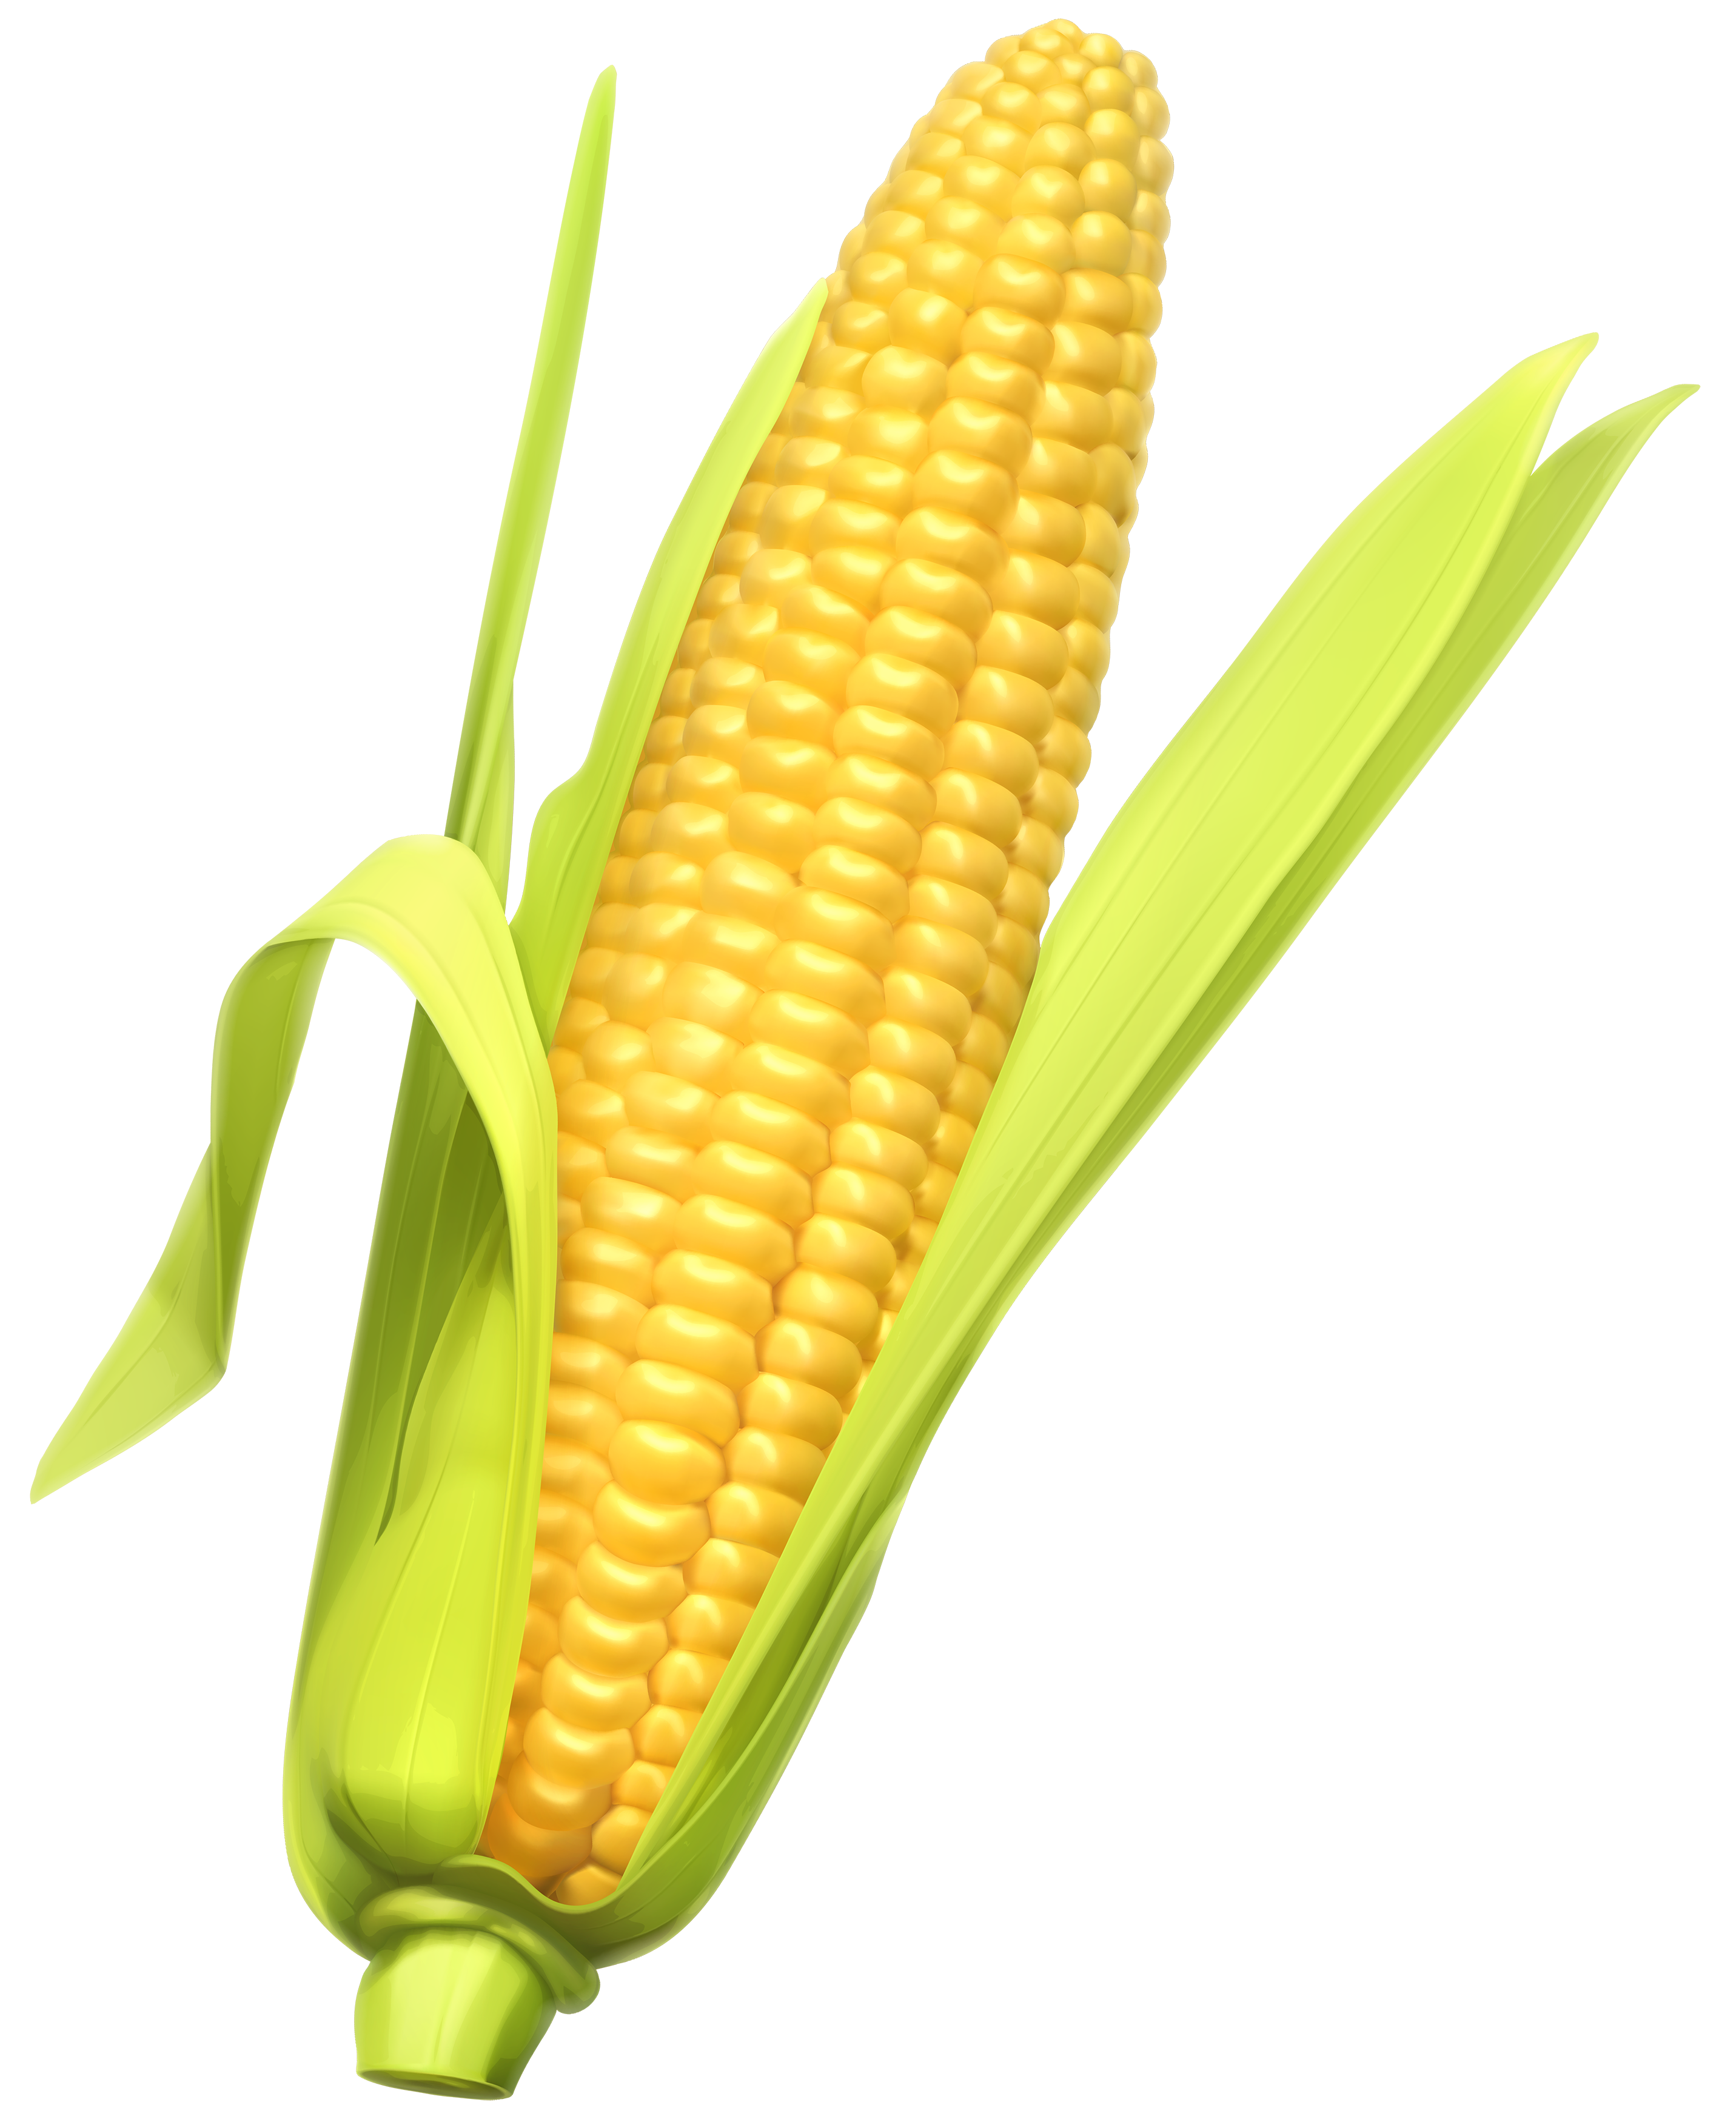 Corn clip art free vector in open office drawing svg svg ...